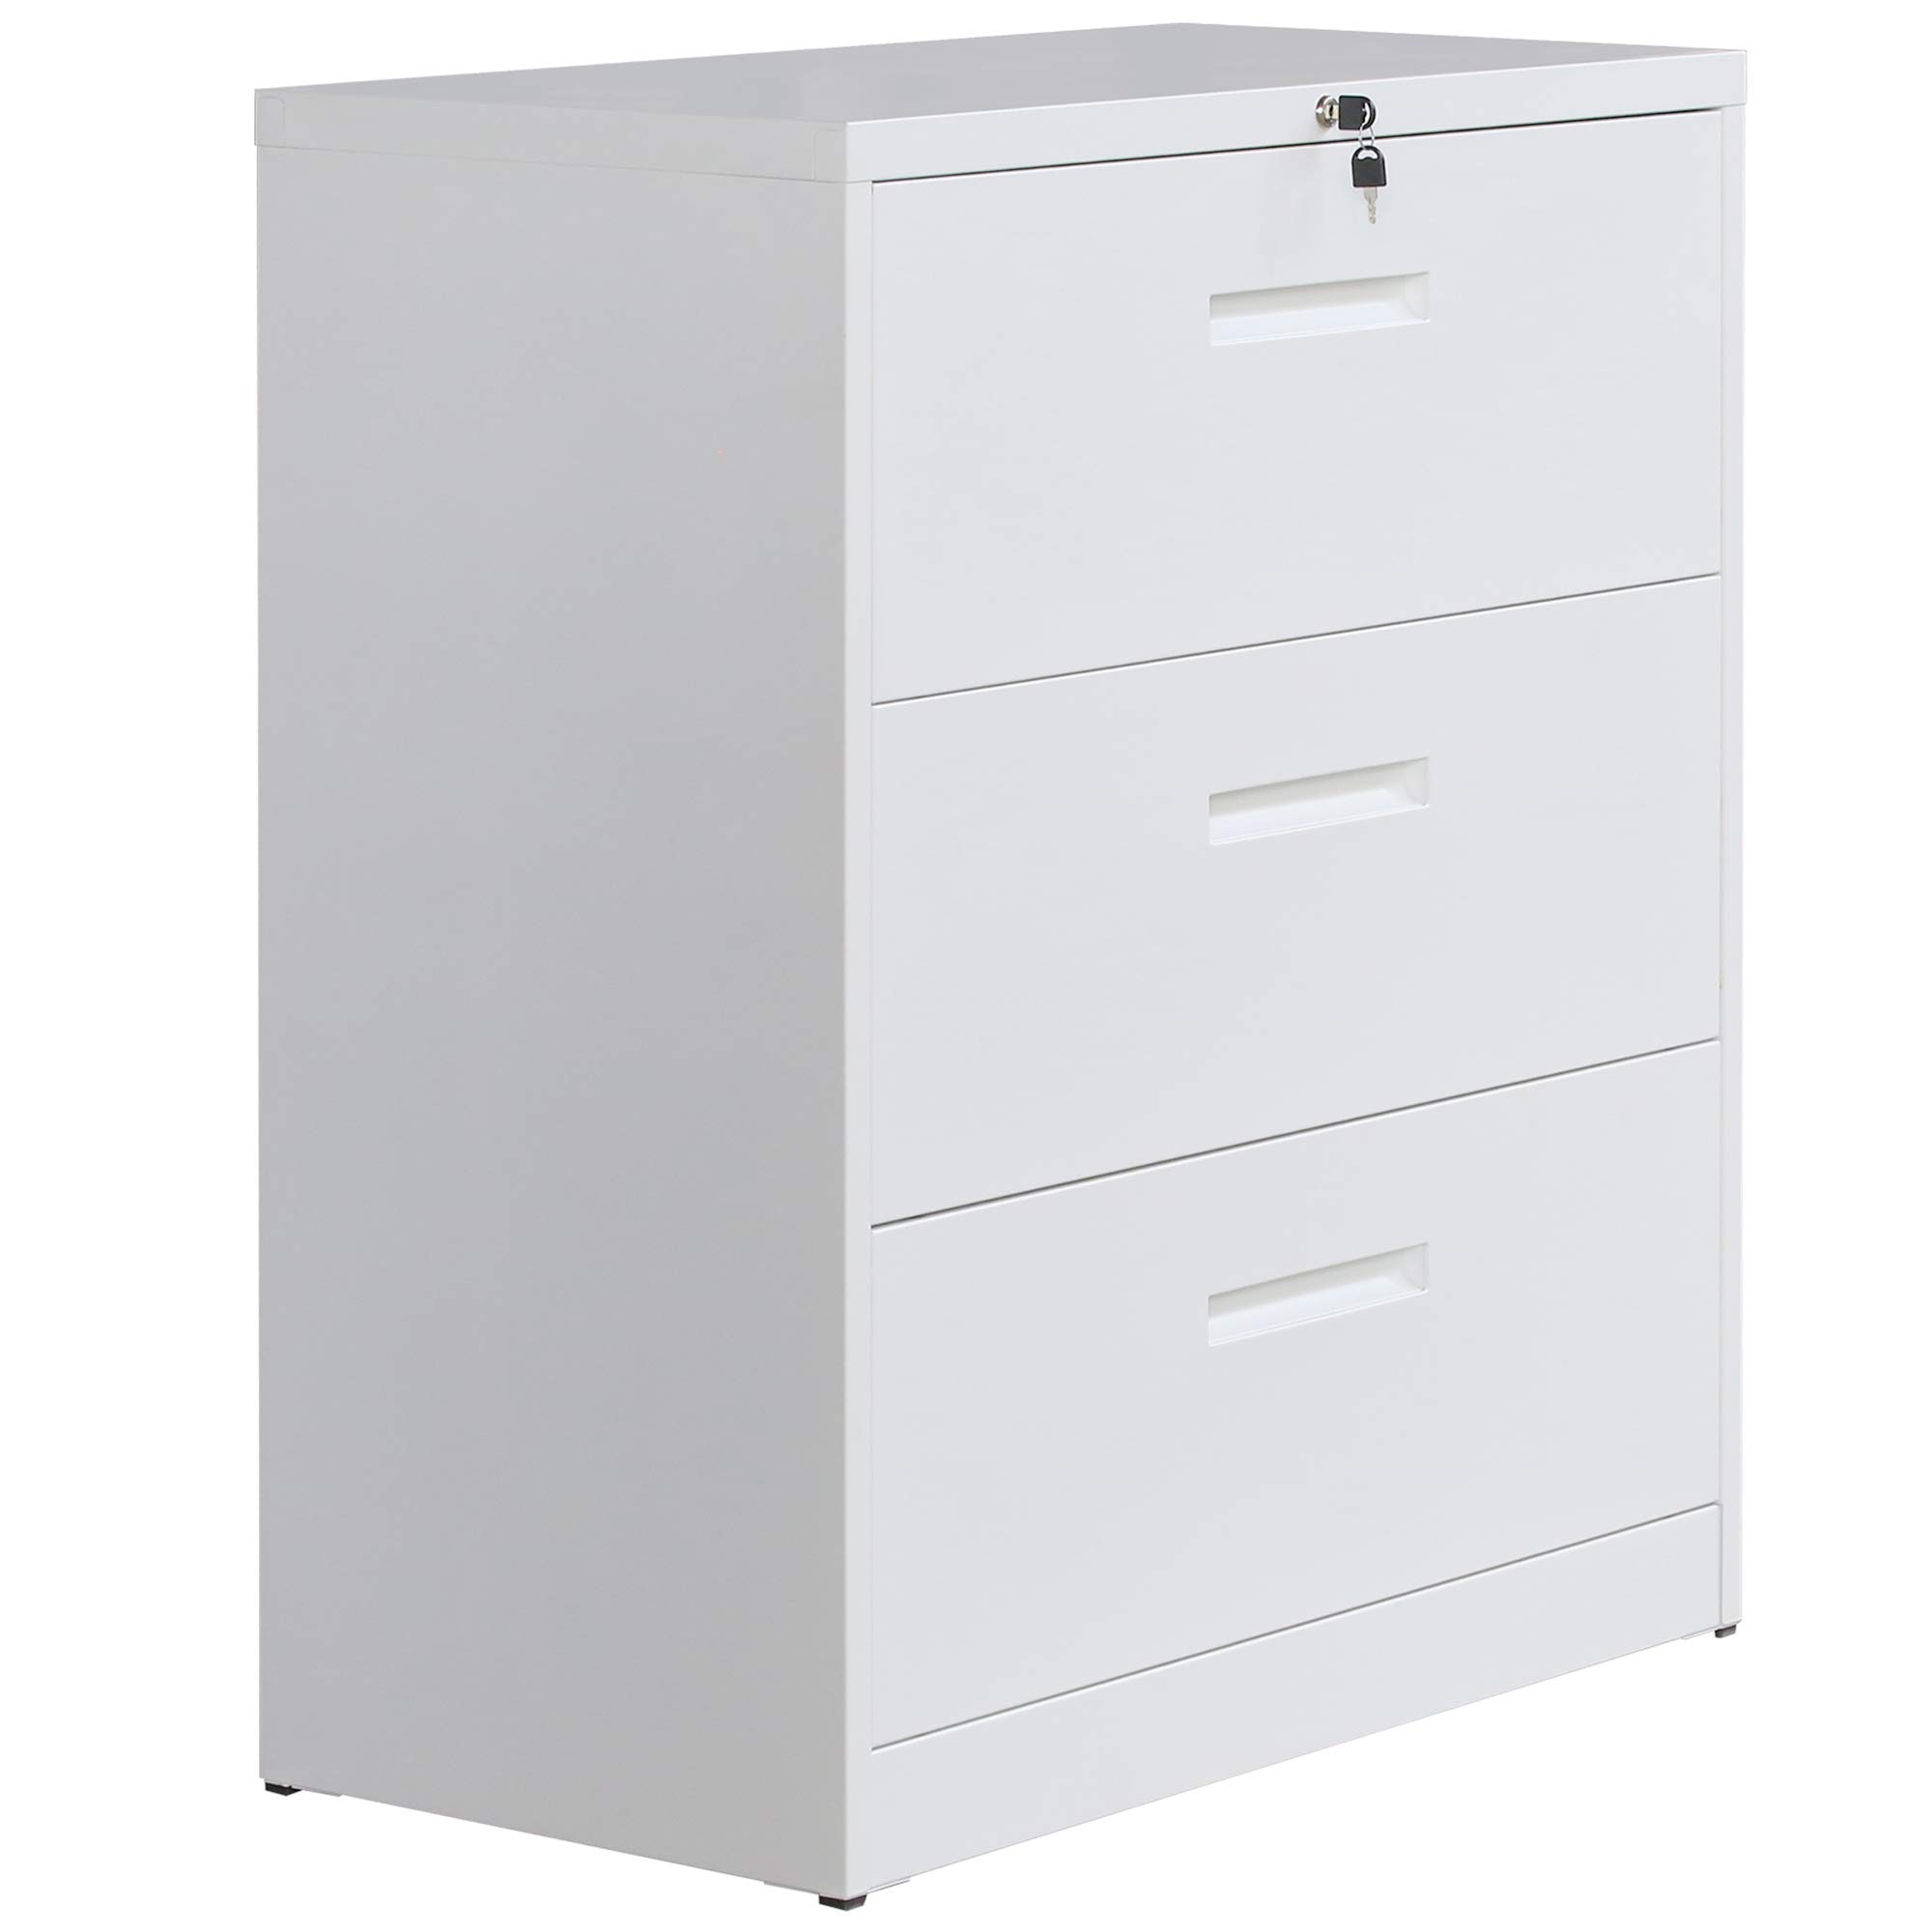 P PURLOVE Lateral File Cabinet Lockable Metal Heavy Duty 3 Drawer Lateral File Cabinet (White)